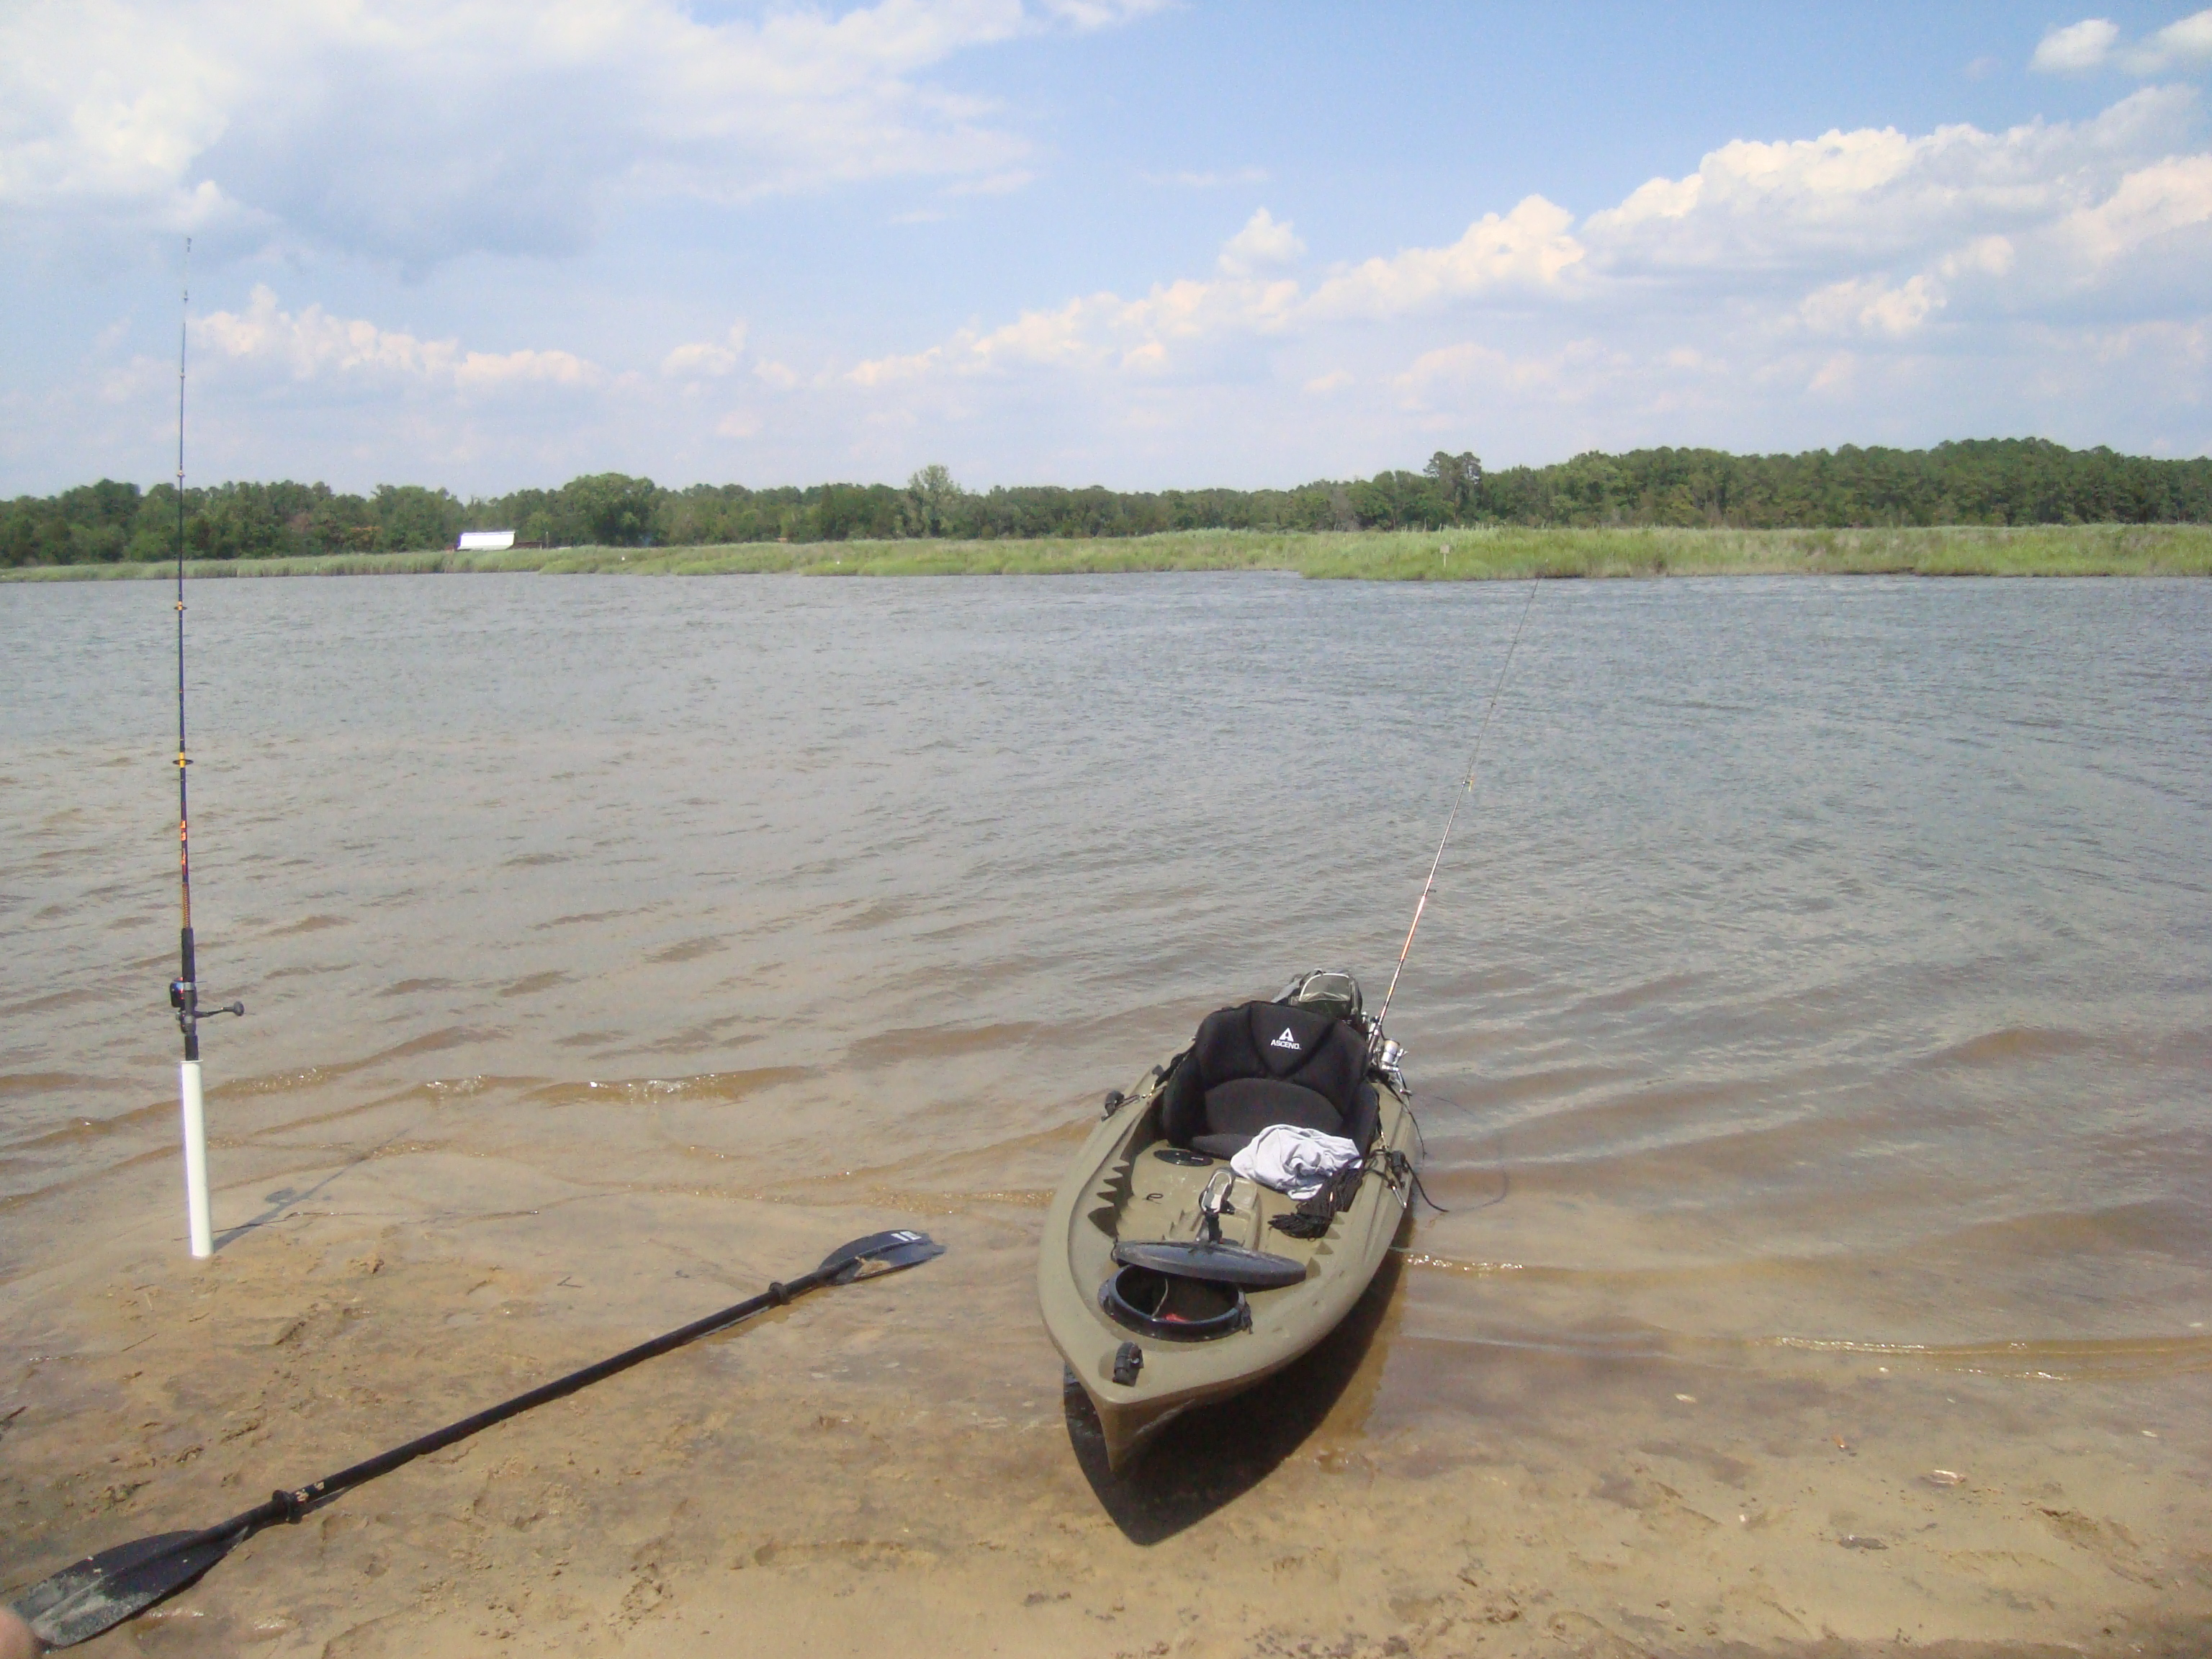 Fishing is regulated by different agencies, depending on where you are along the creek.